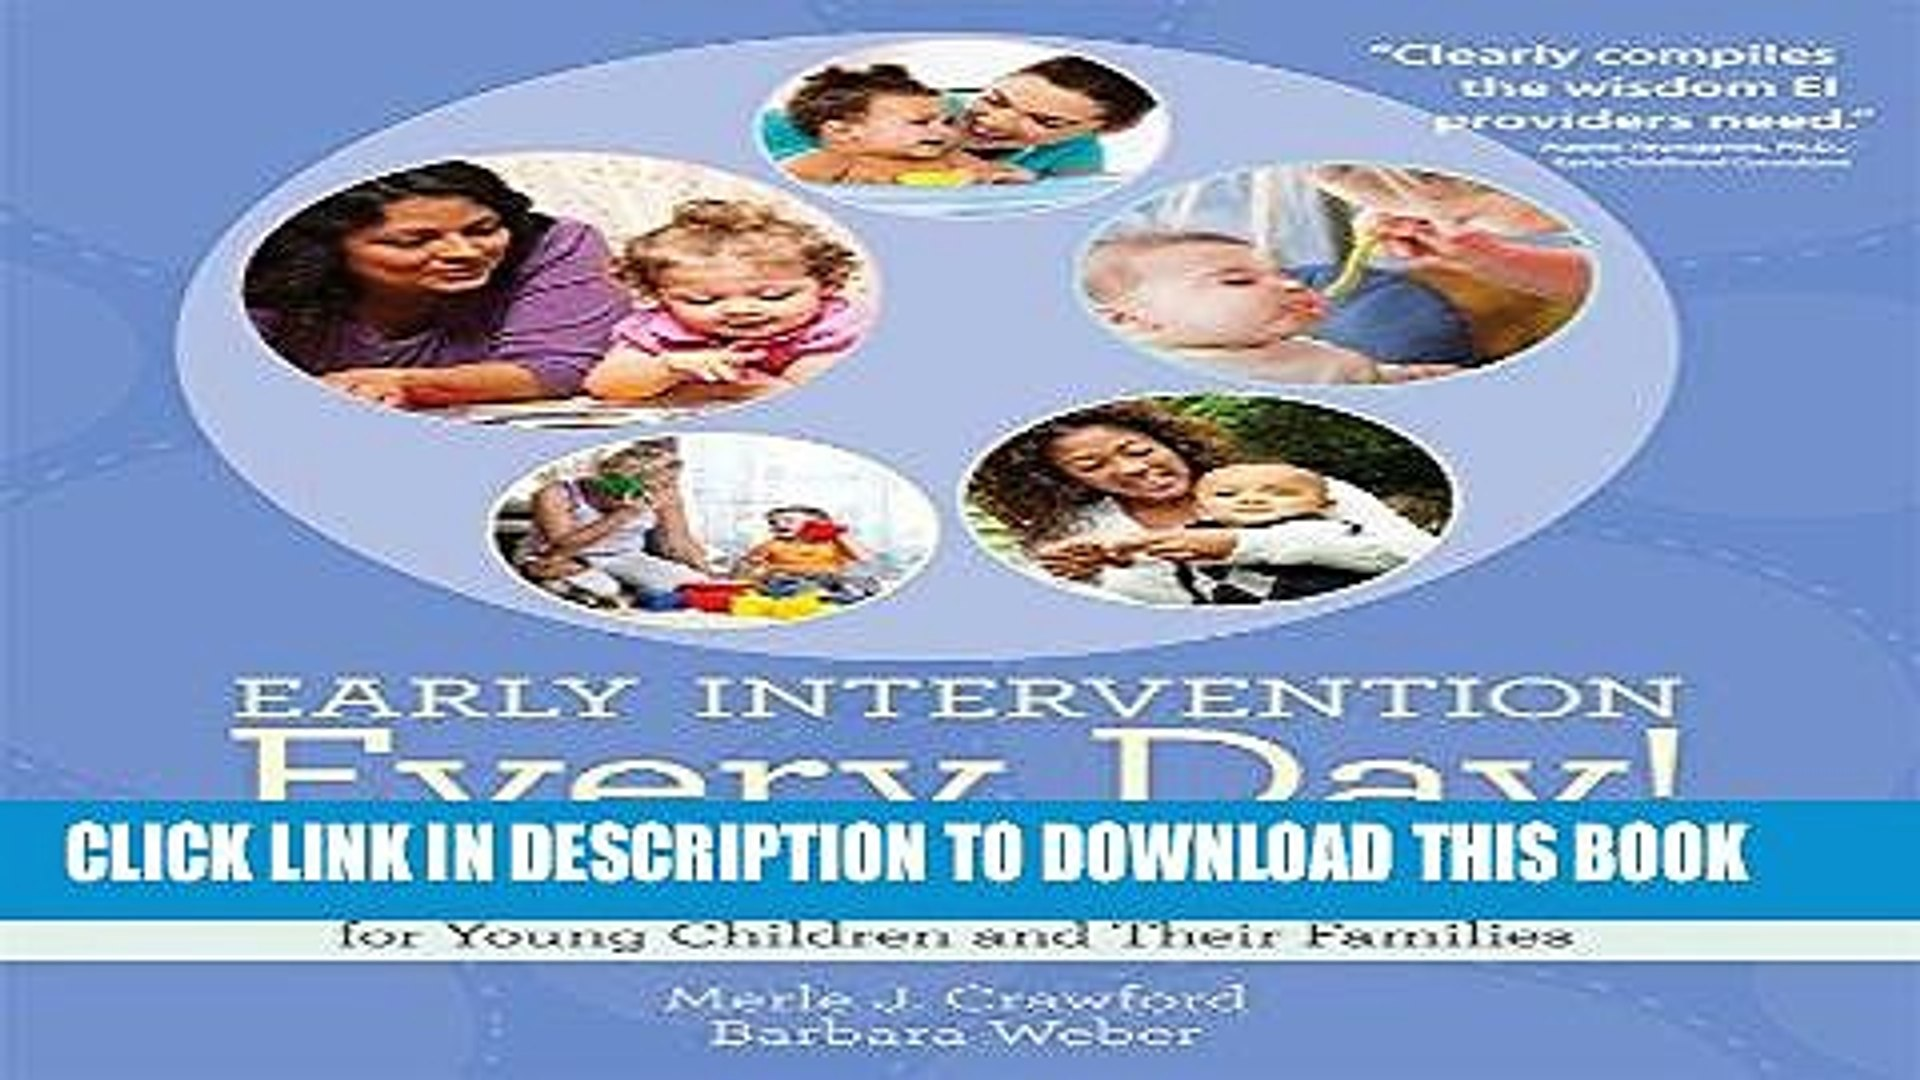 [READ] EBOOK Early Intervention Every Day!: Embedding Activities in Daily Routines for Young